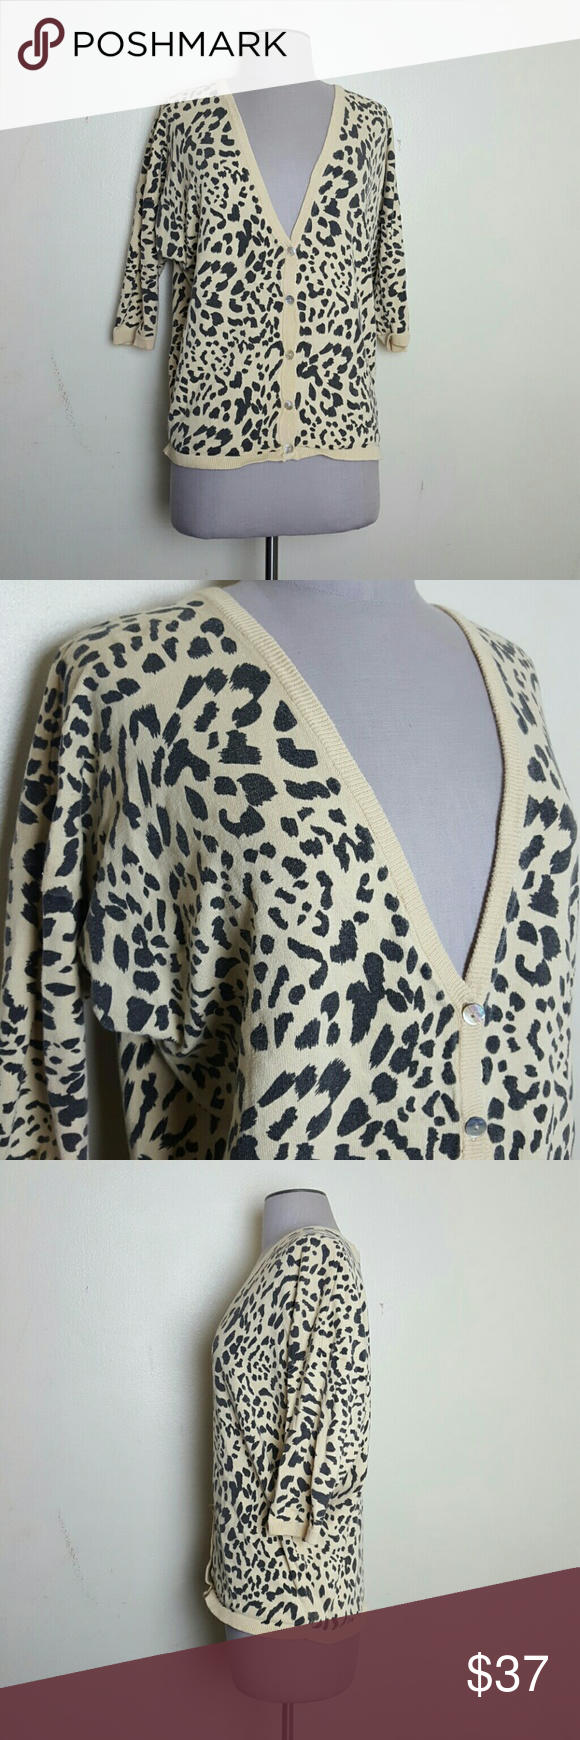 Printed Cardigan Cheetah print v neck cardigan  3/4 sleeves Forever 21 Sweaters Cardigans